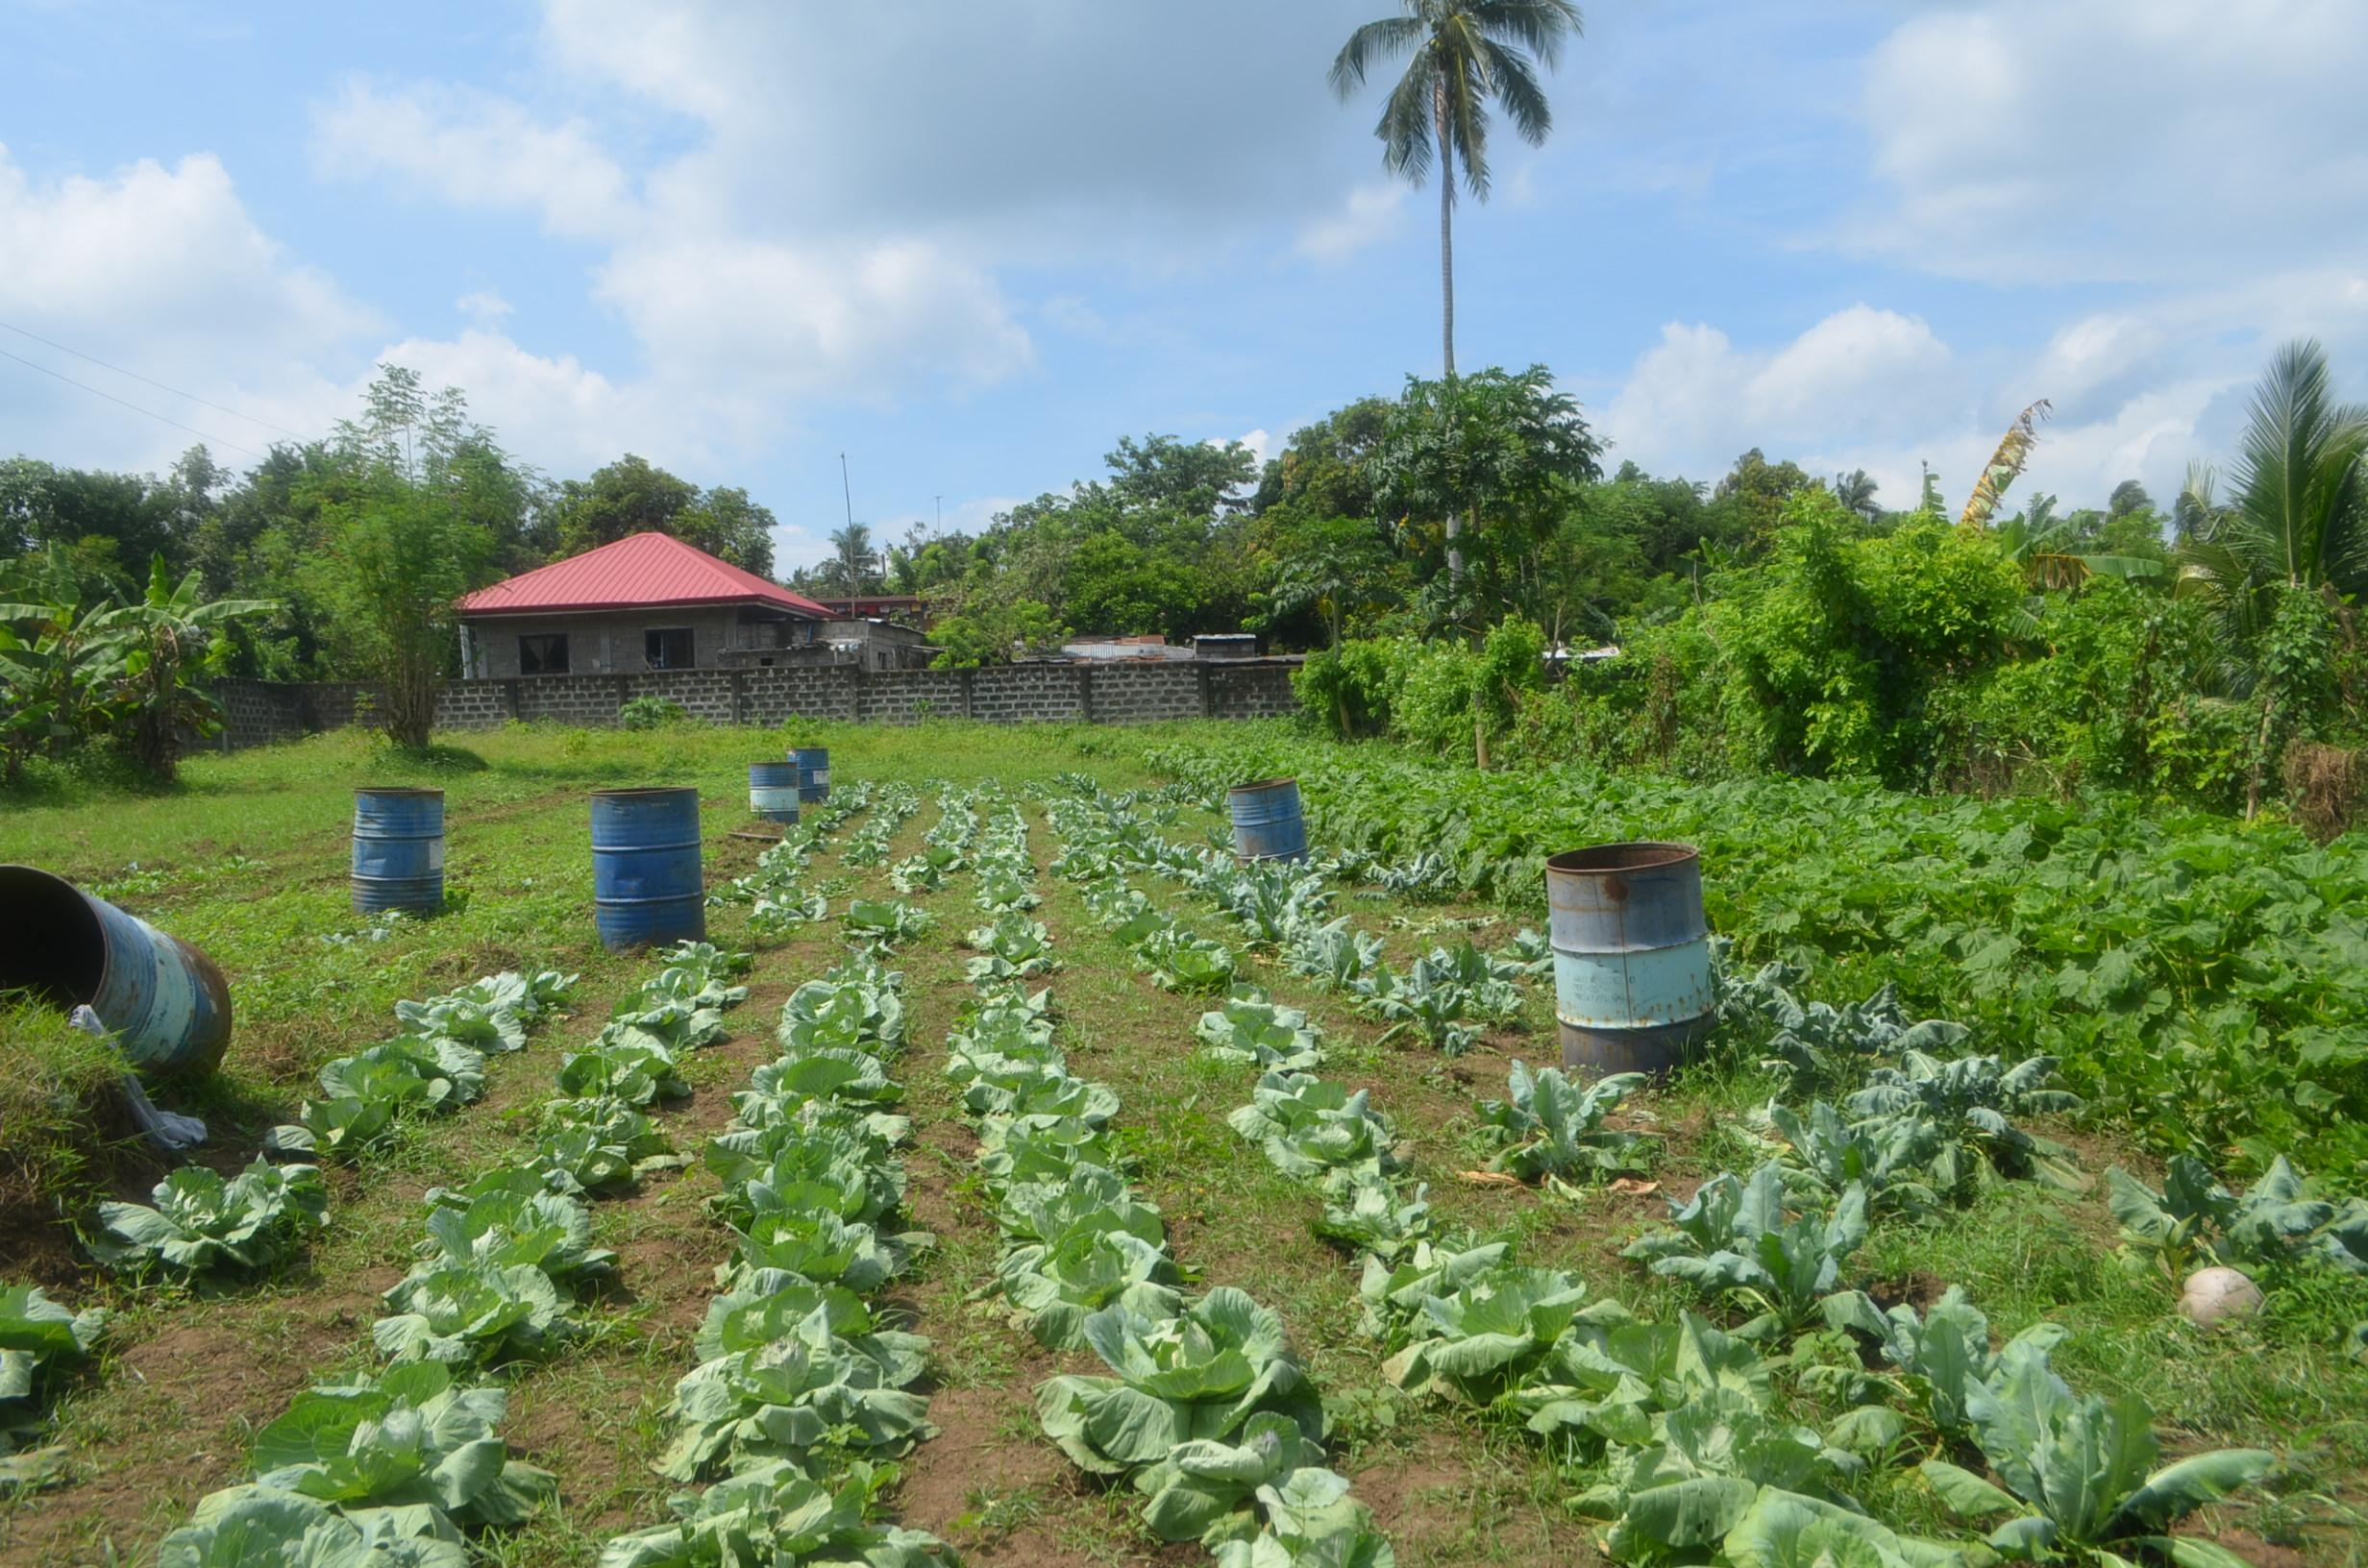 Farm/Commercial lot for sale in Lipa Batangas Contact us now +639261514540